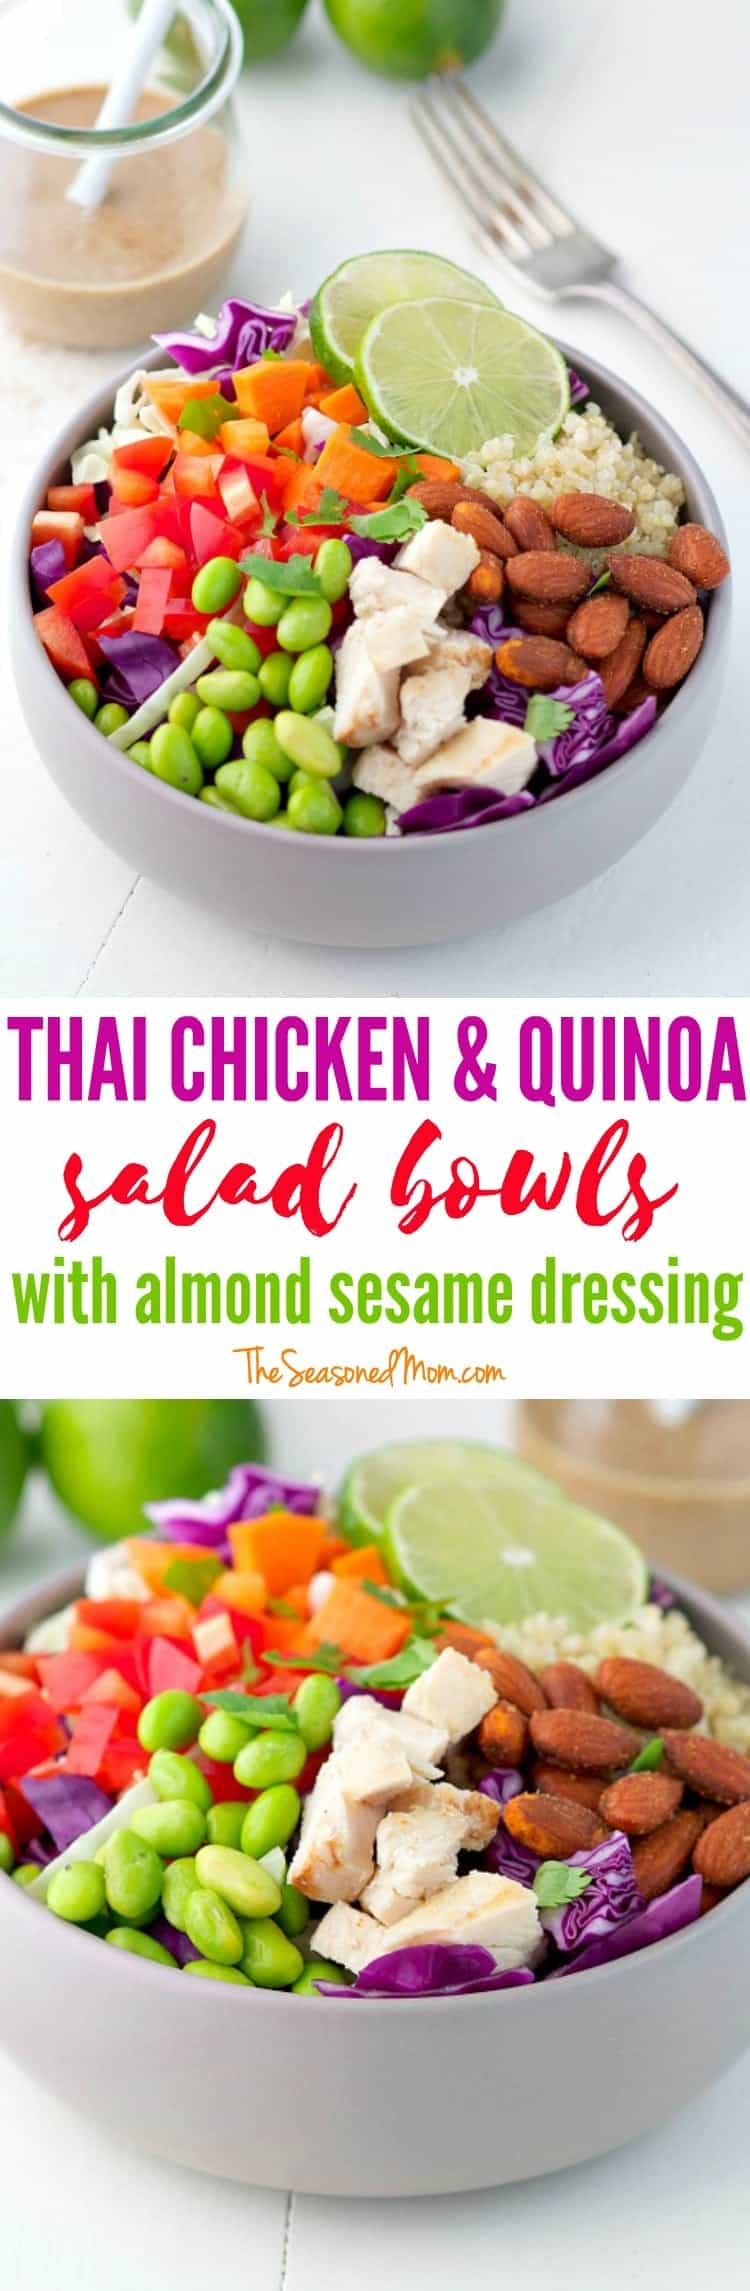 These healthy, high-protein Thai Chicken and Quinoa Salad Bowls are ...